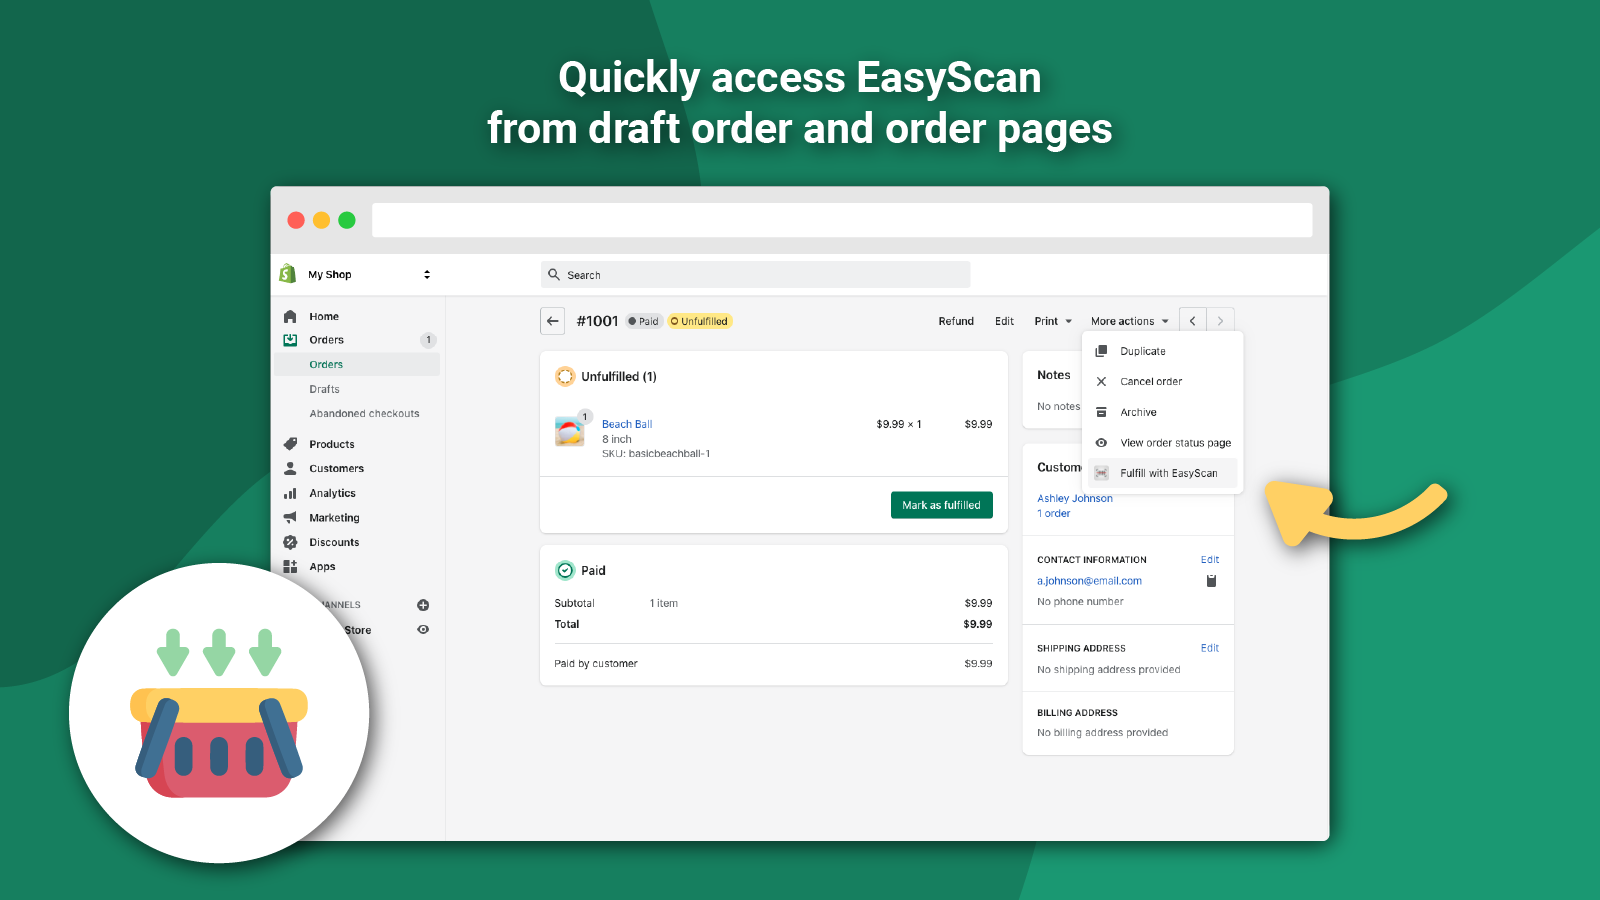 Quick access from draft order and order pages